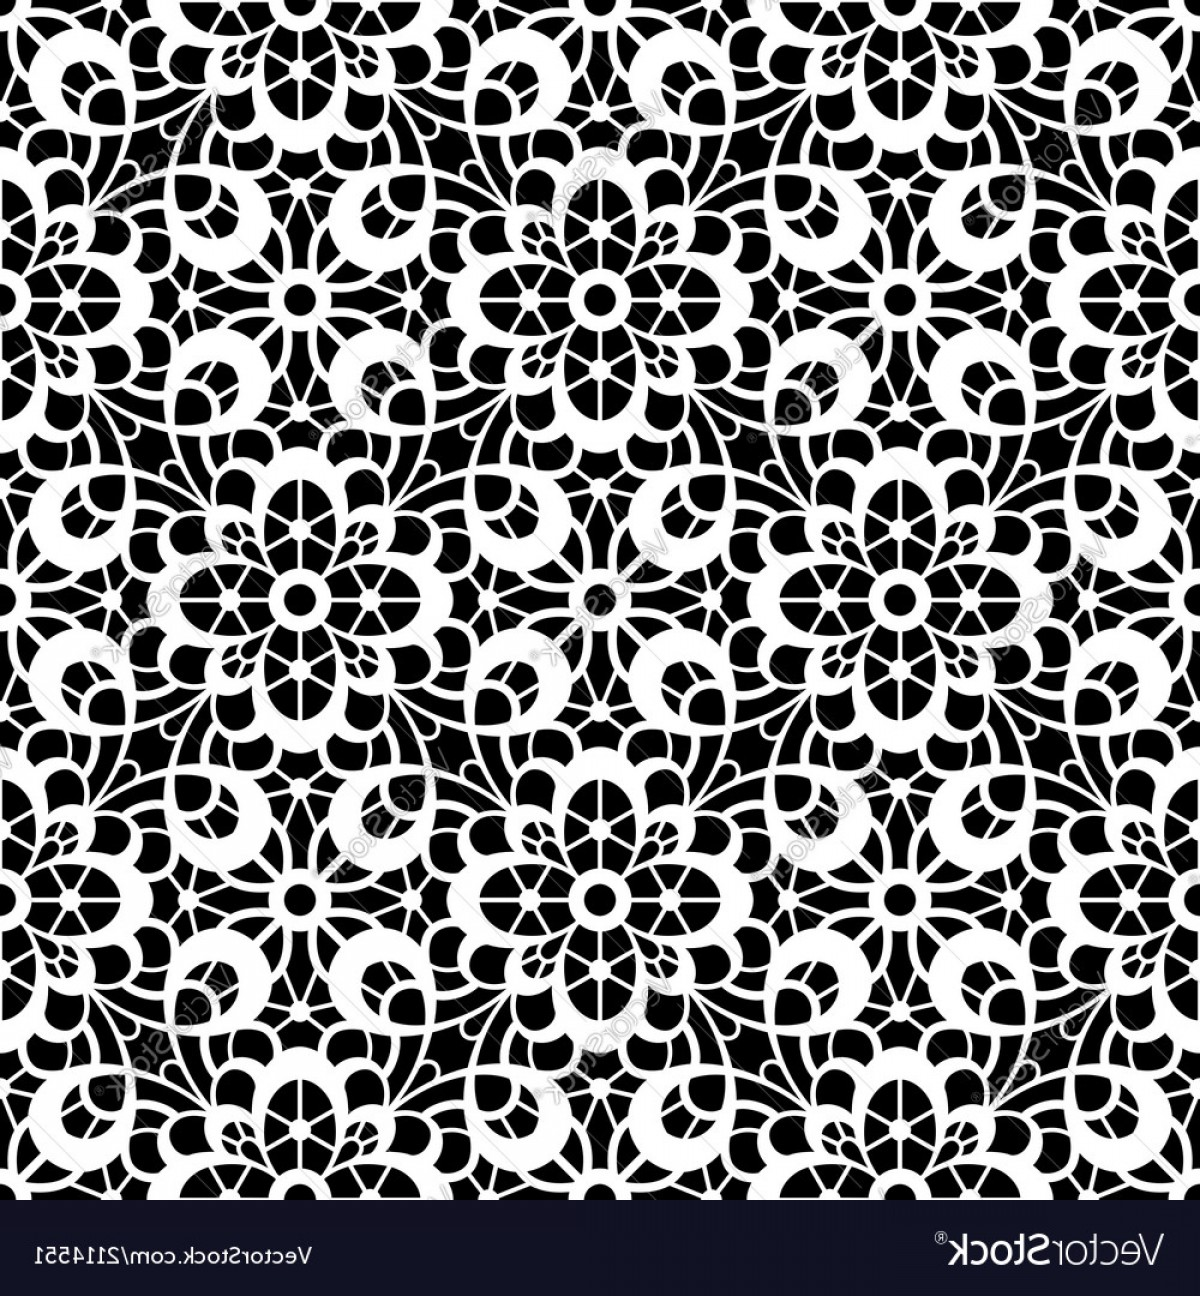 Tulle Black Lace Pattern Vector: Black And White Lace Pattern Vector